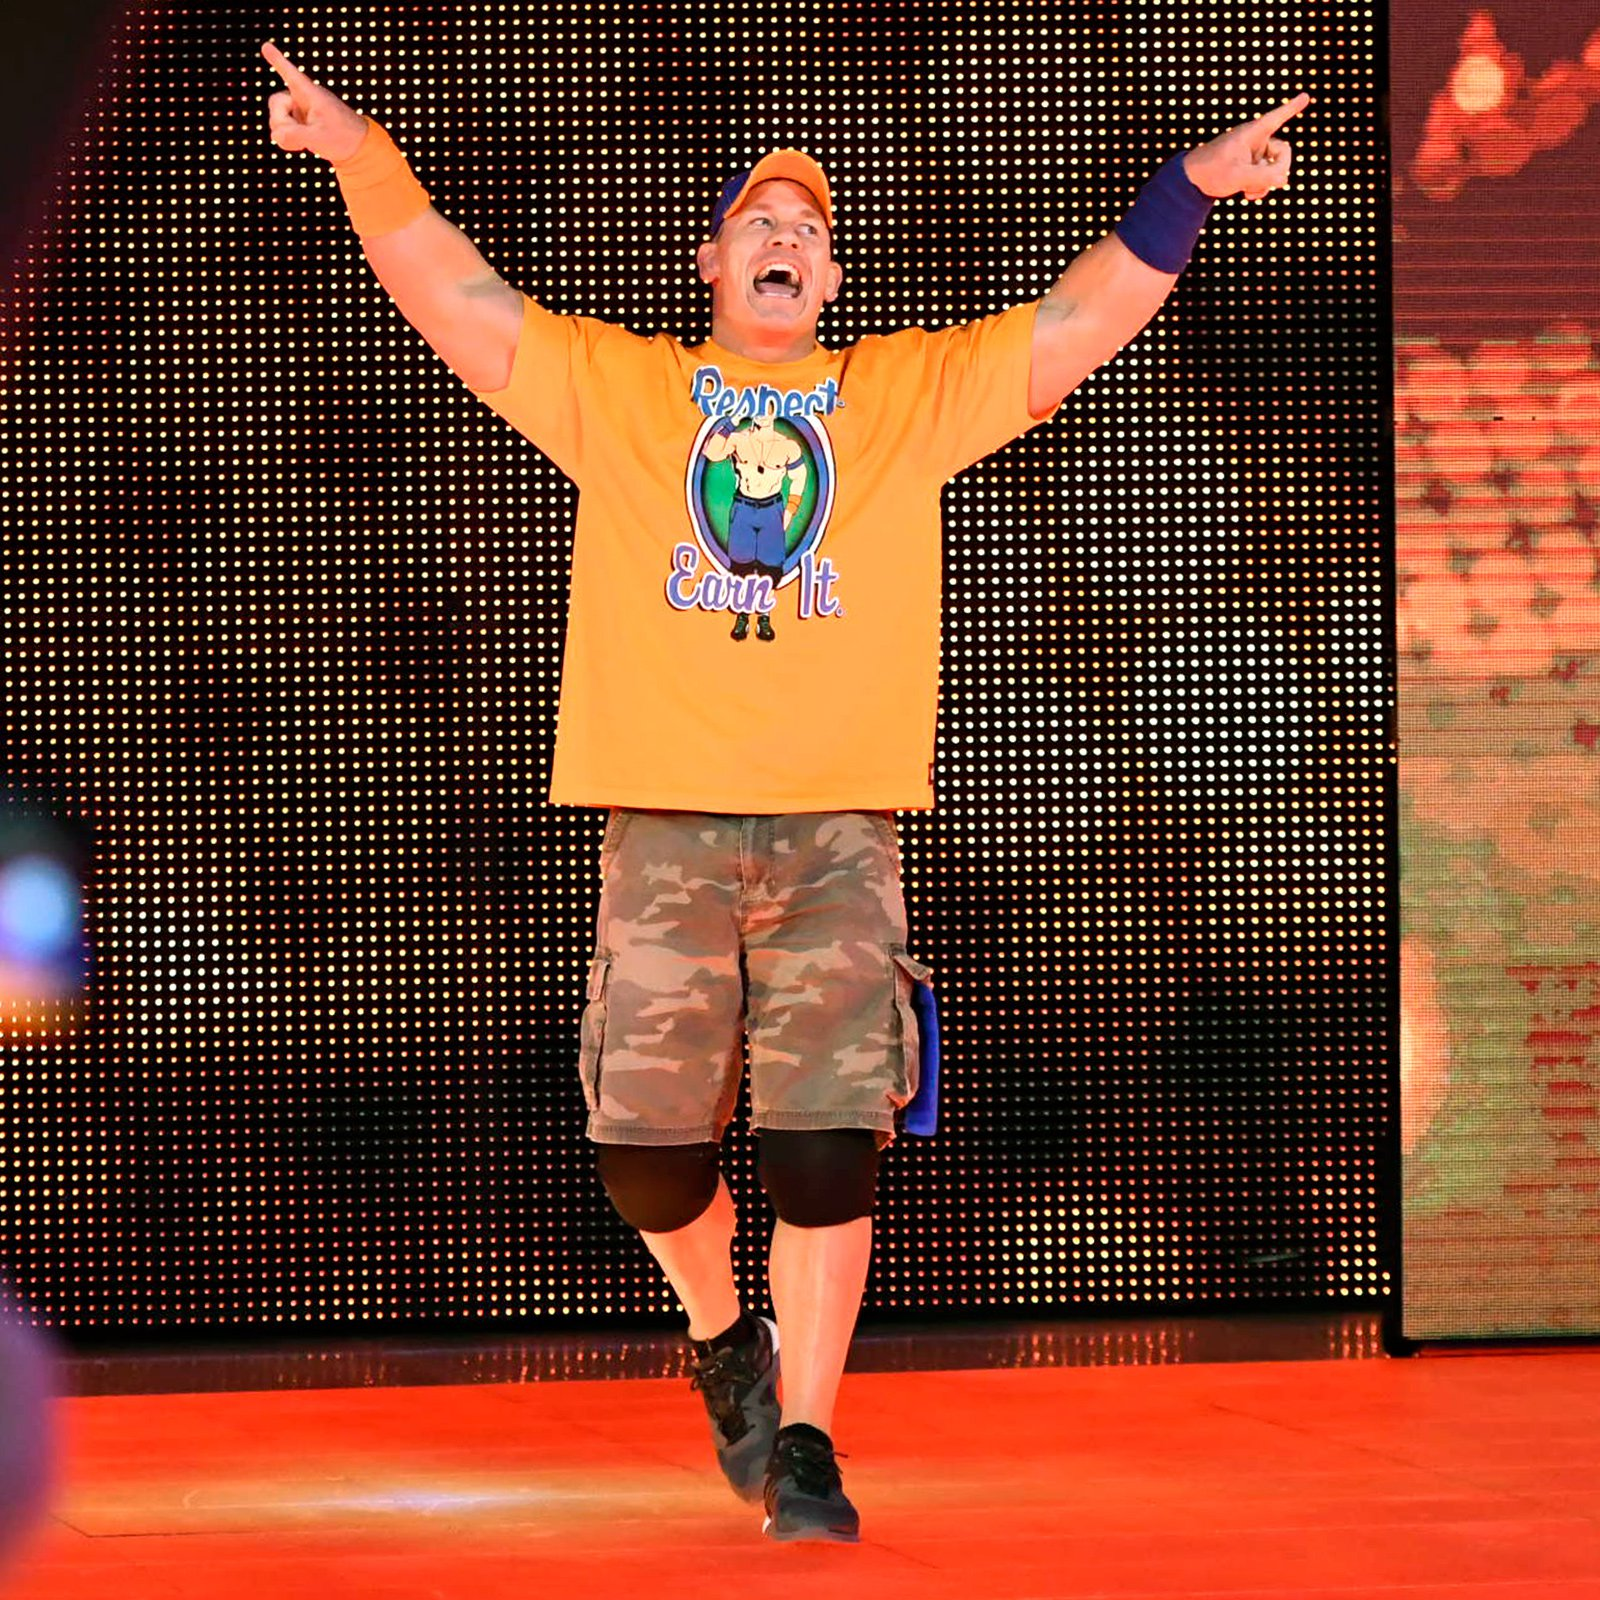 ... and John Cena hits the scene to answer the call!